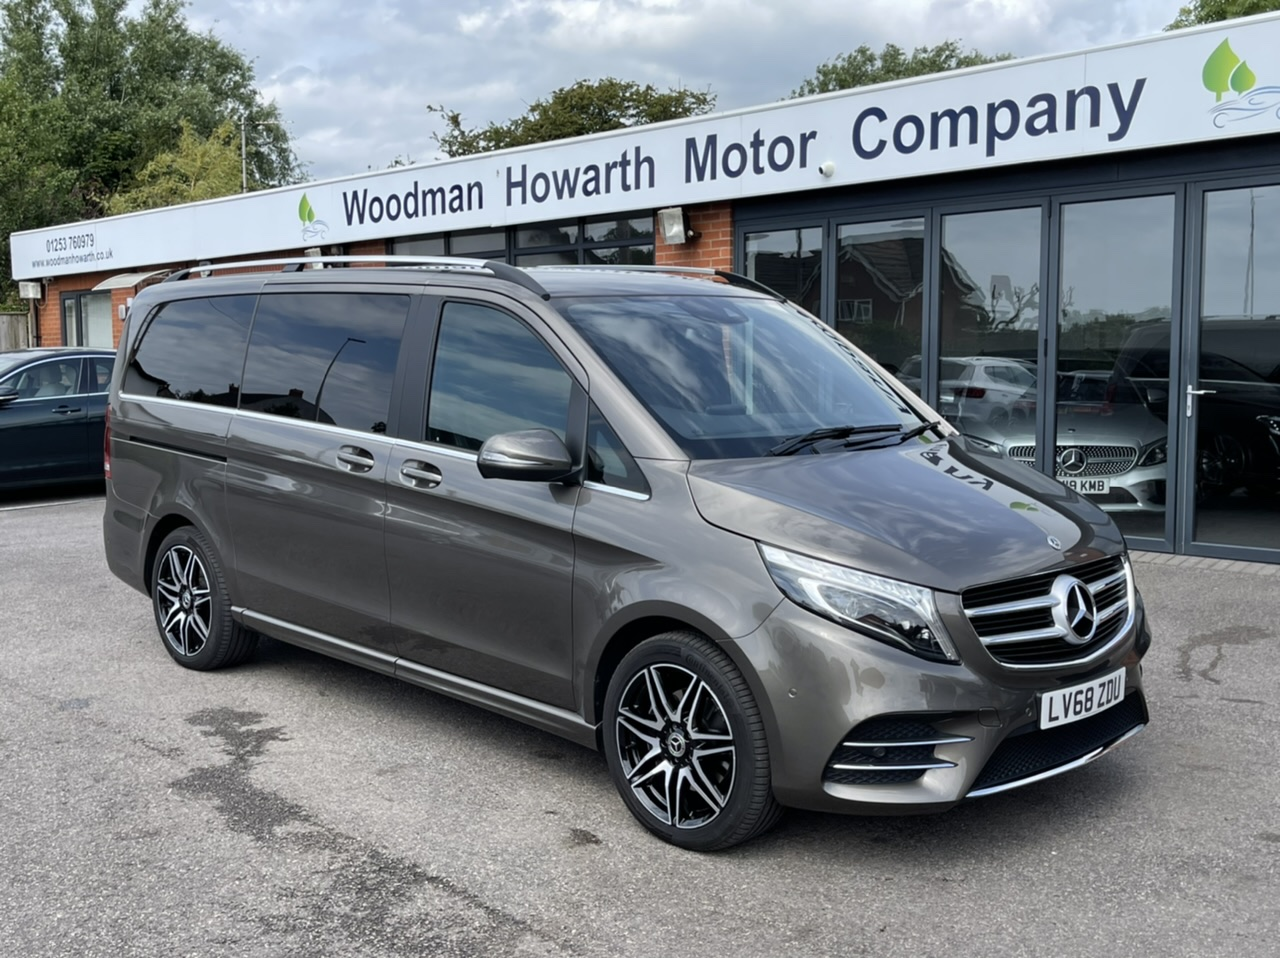 2018 68 MERCEDES BENZ V220D 163BHP AMG LINE LONG 7G-TRONIC AUTO - Extremely rare Indium Grey - Low Miles